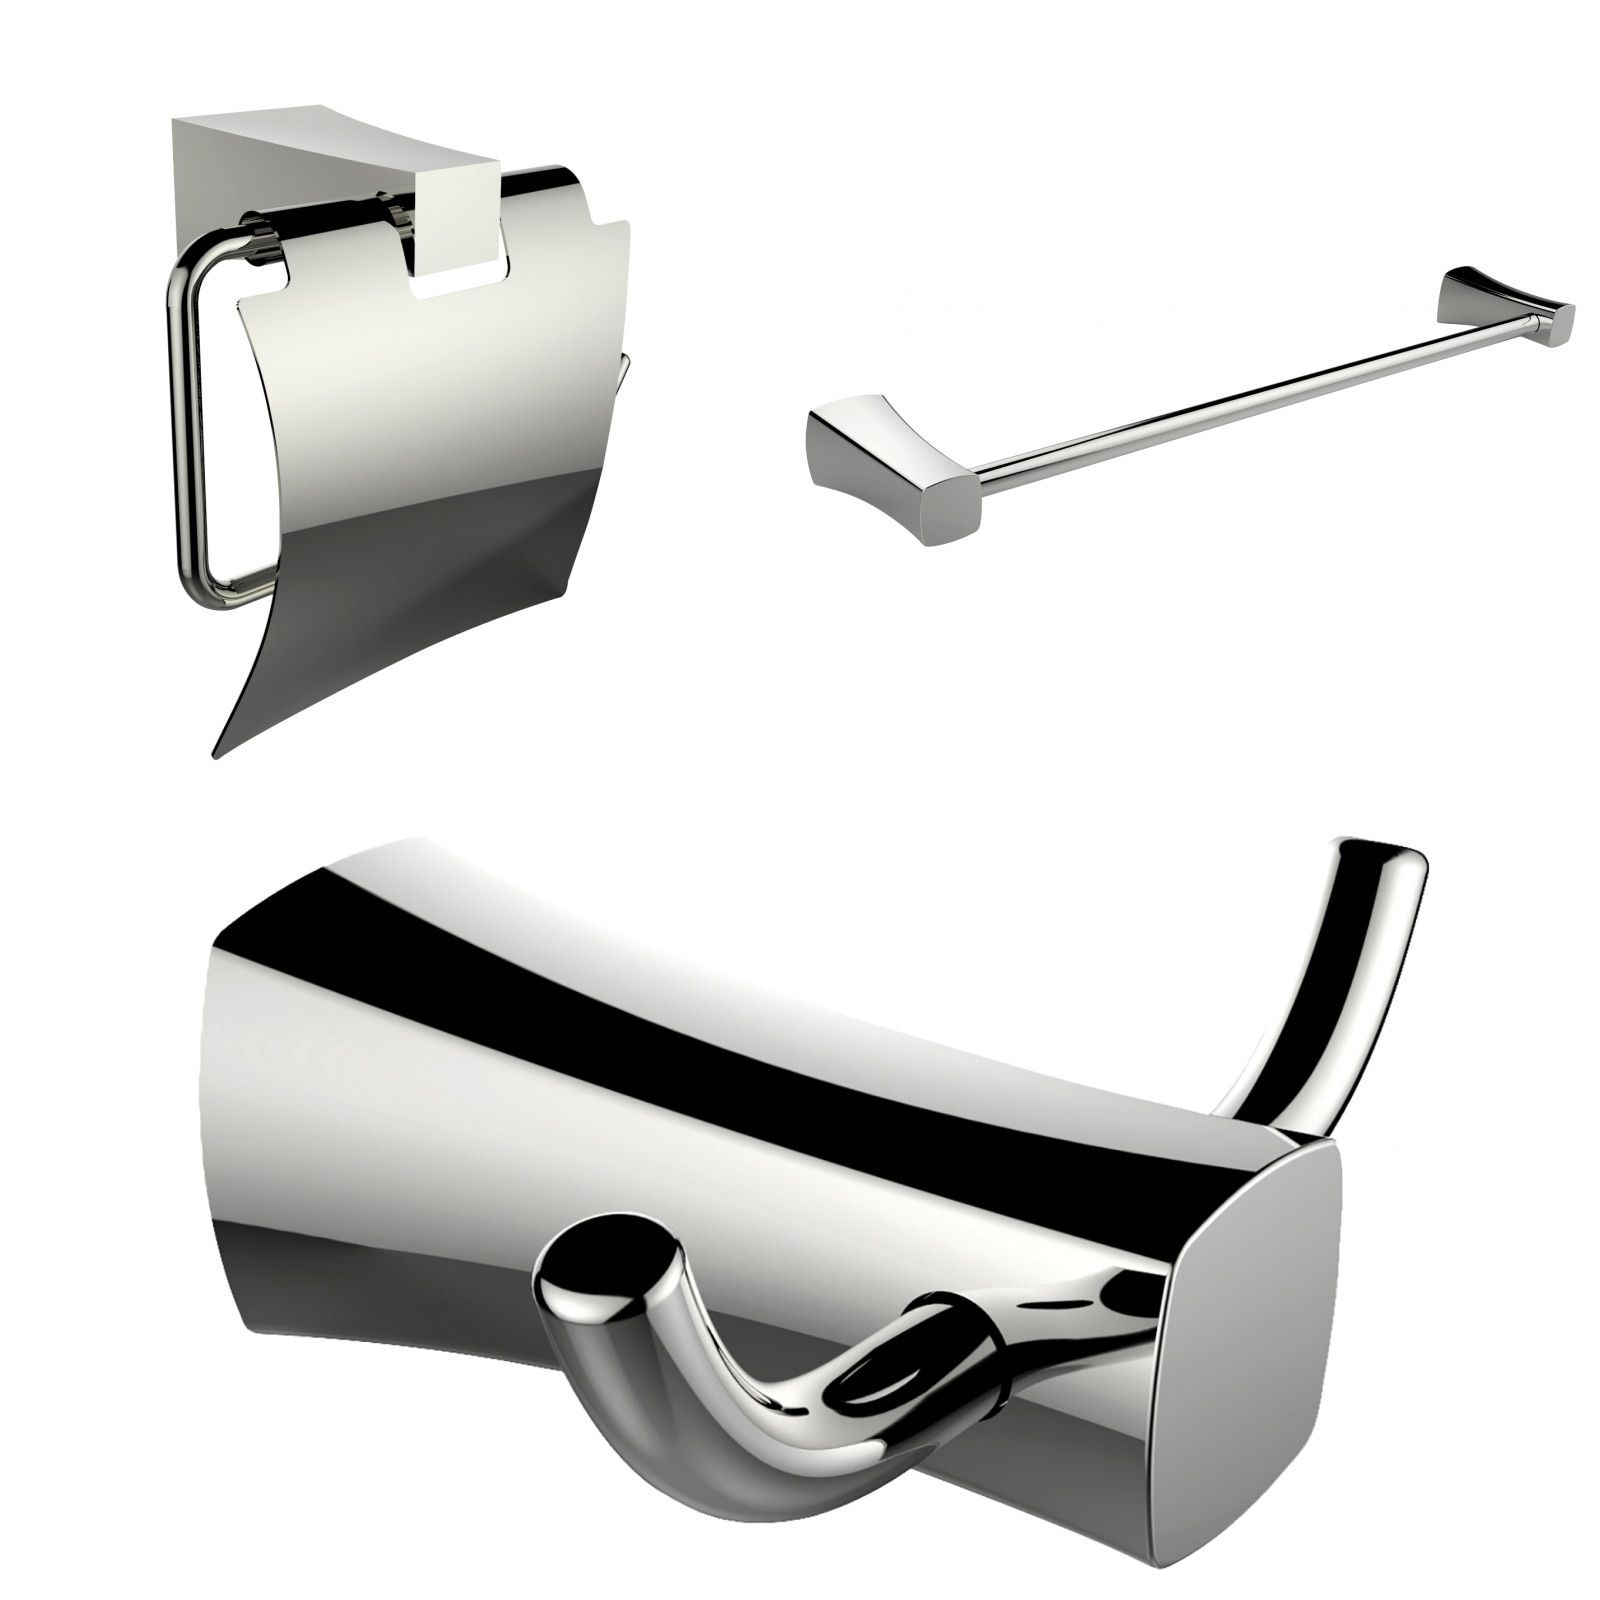 American Imaginations Single Rod Towel Rack, Robe Hook And Toilet Paper Holder Accessory Set (Chrome), Silver (Metal)